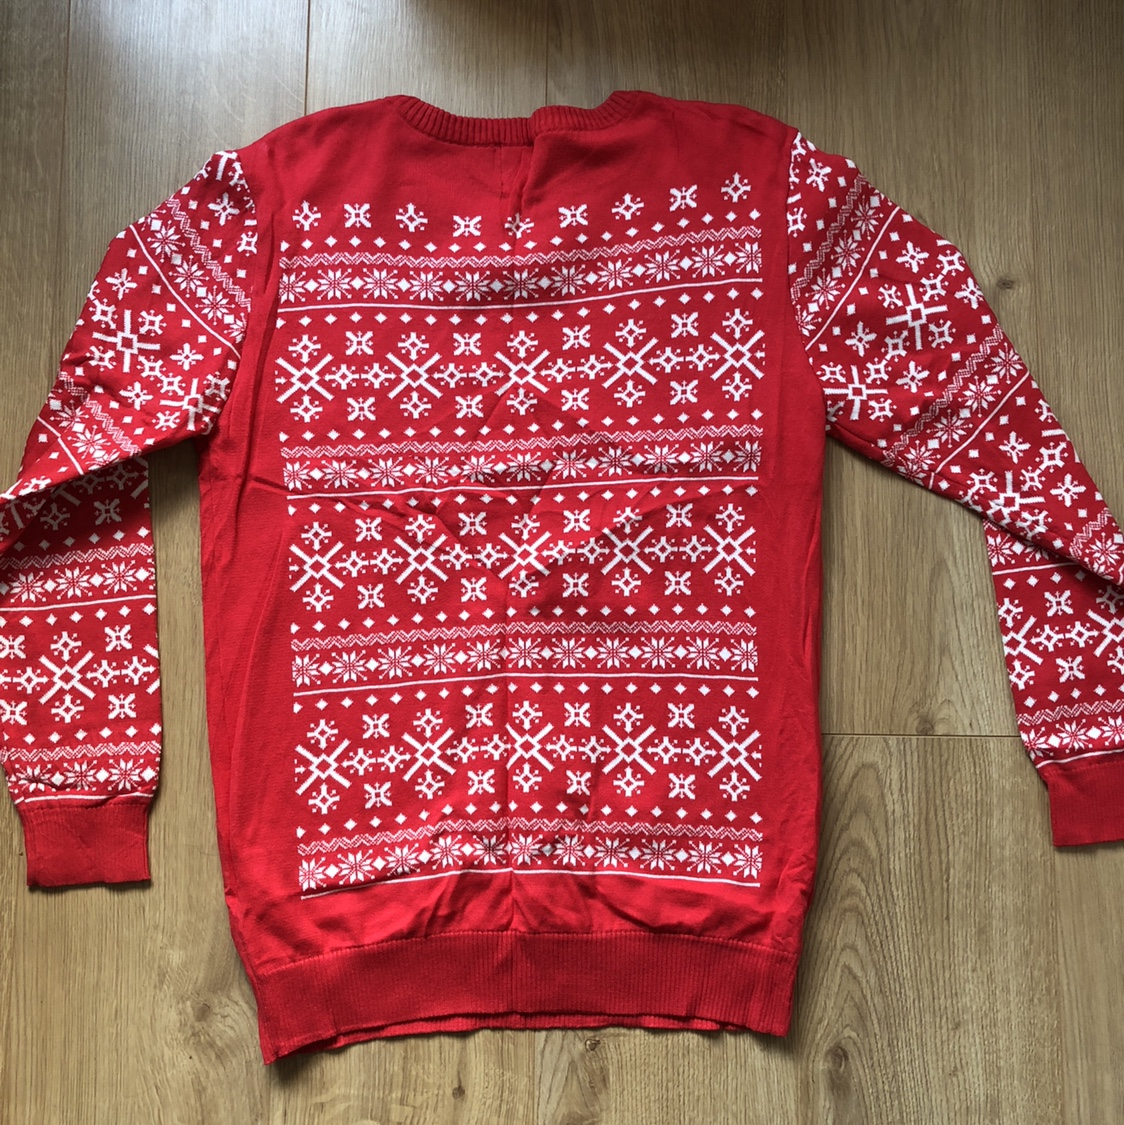 Yogscast official Christmas jumper merchandise. This Depop